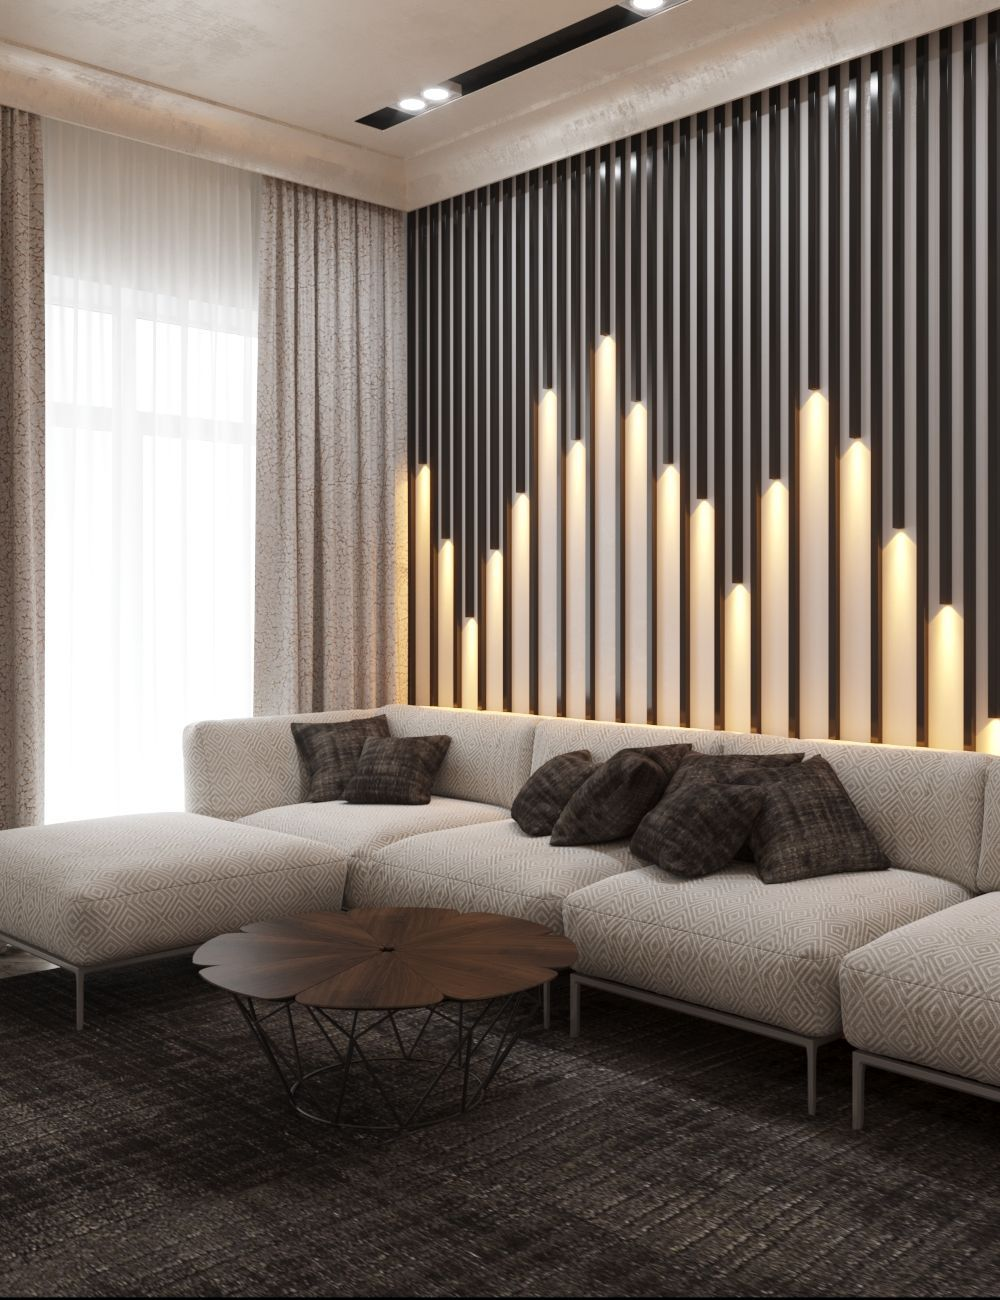 Wall Paneling Ideas Living Room, Wall Panels For Living Room